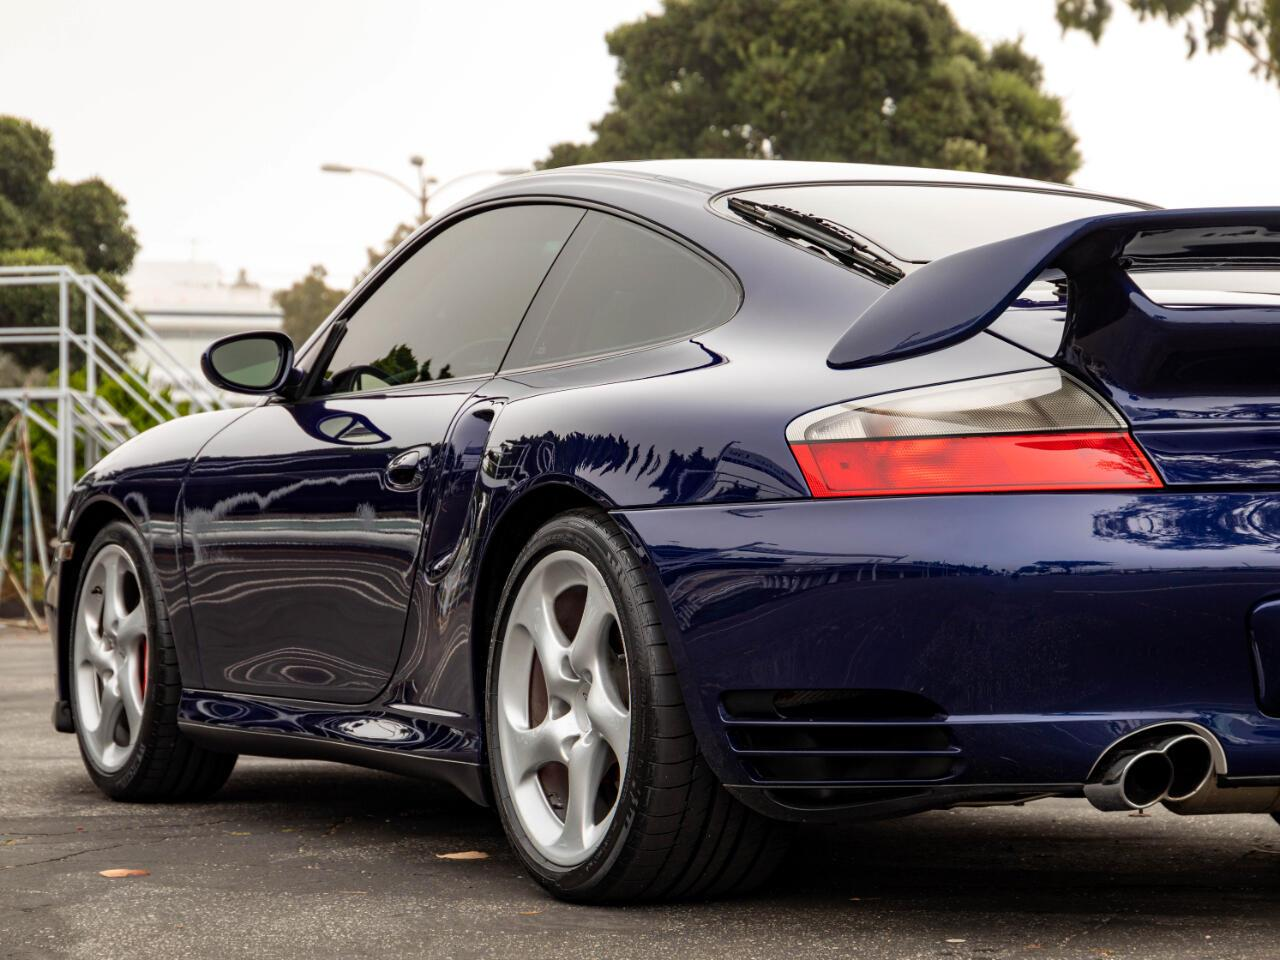 2003 Porsche 996 (CC-1410899) for sale in Marina Del Rey, California